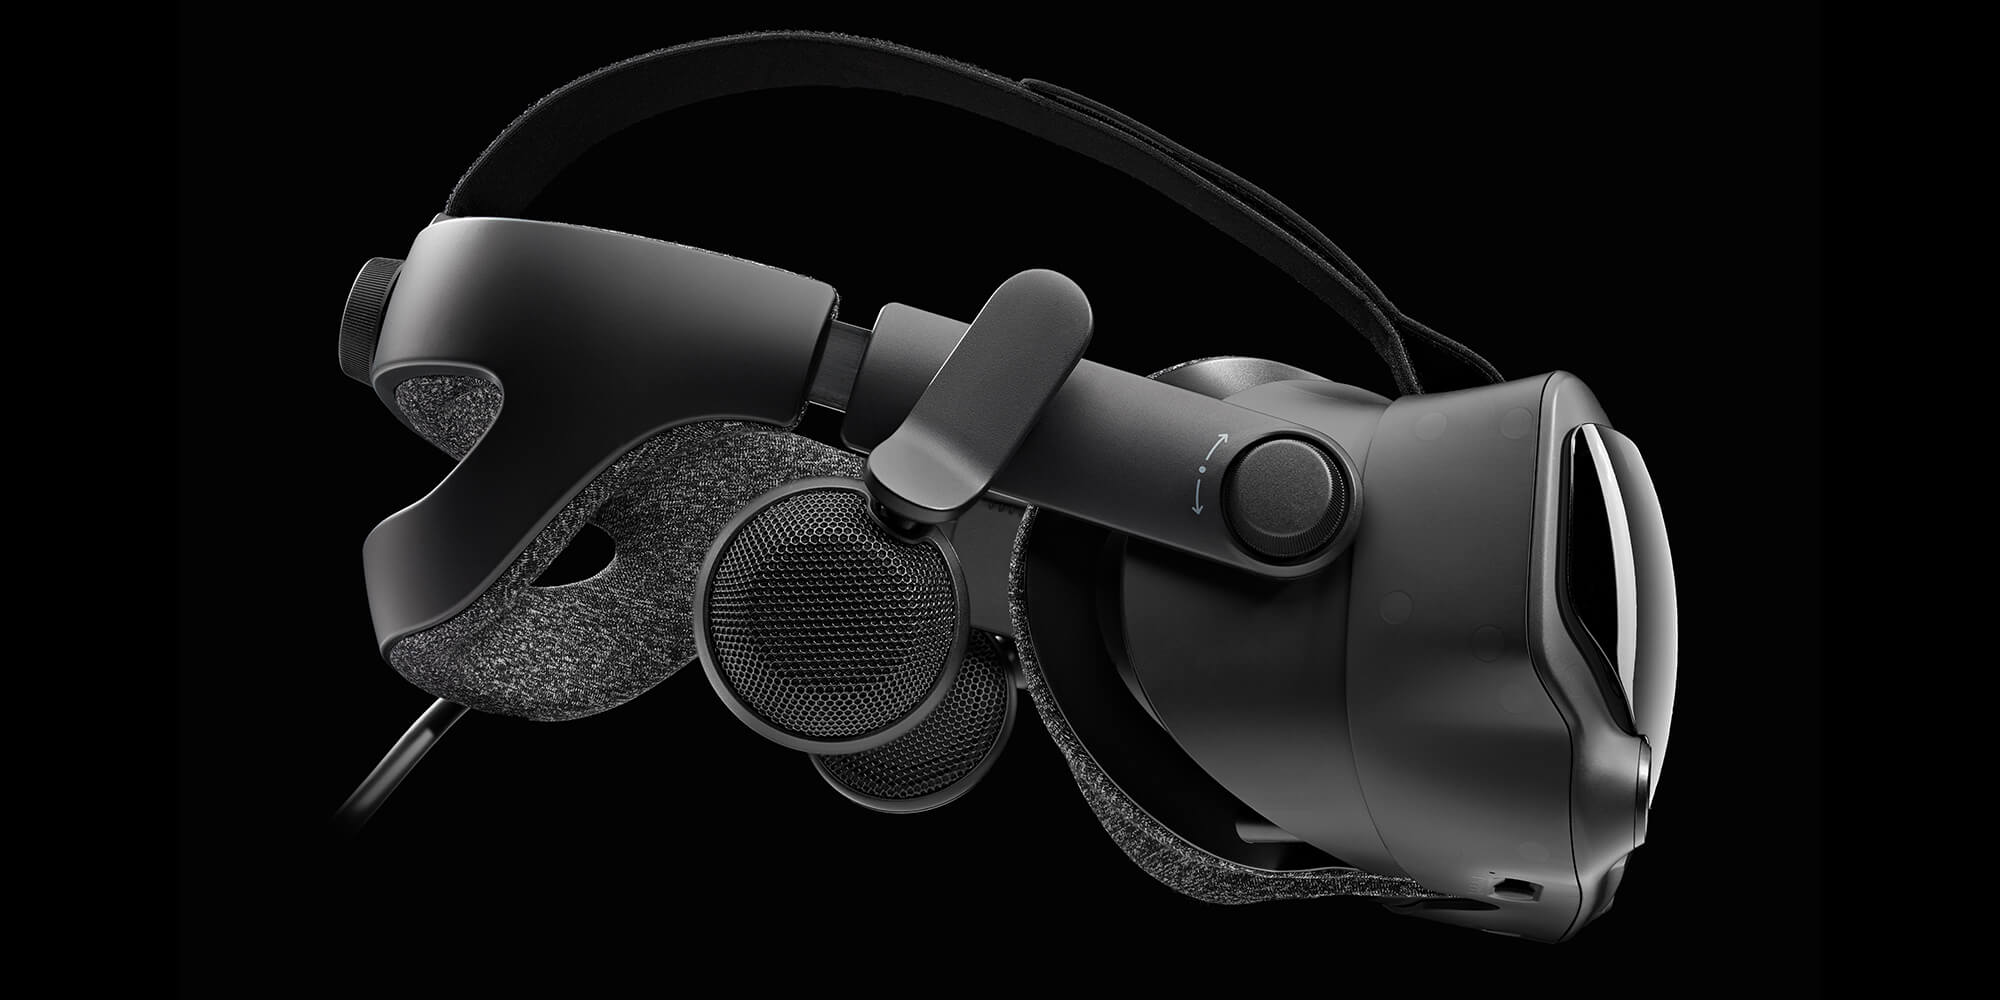 Valve Index VR headset revealed with